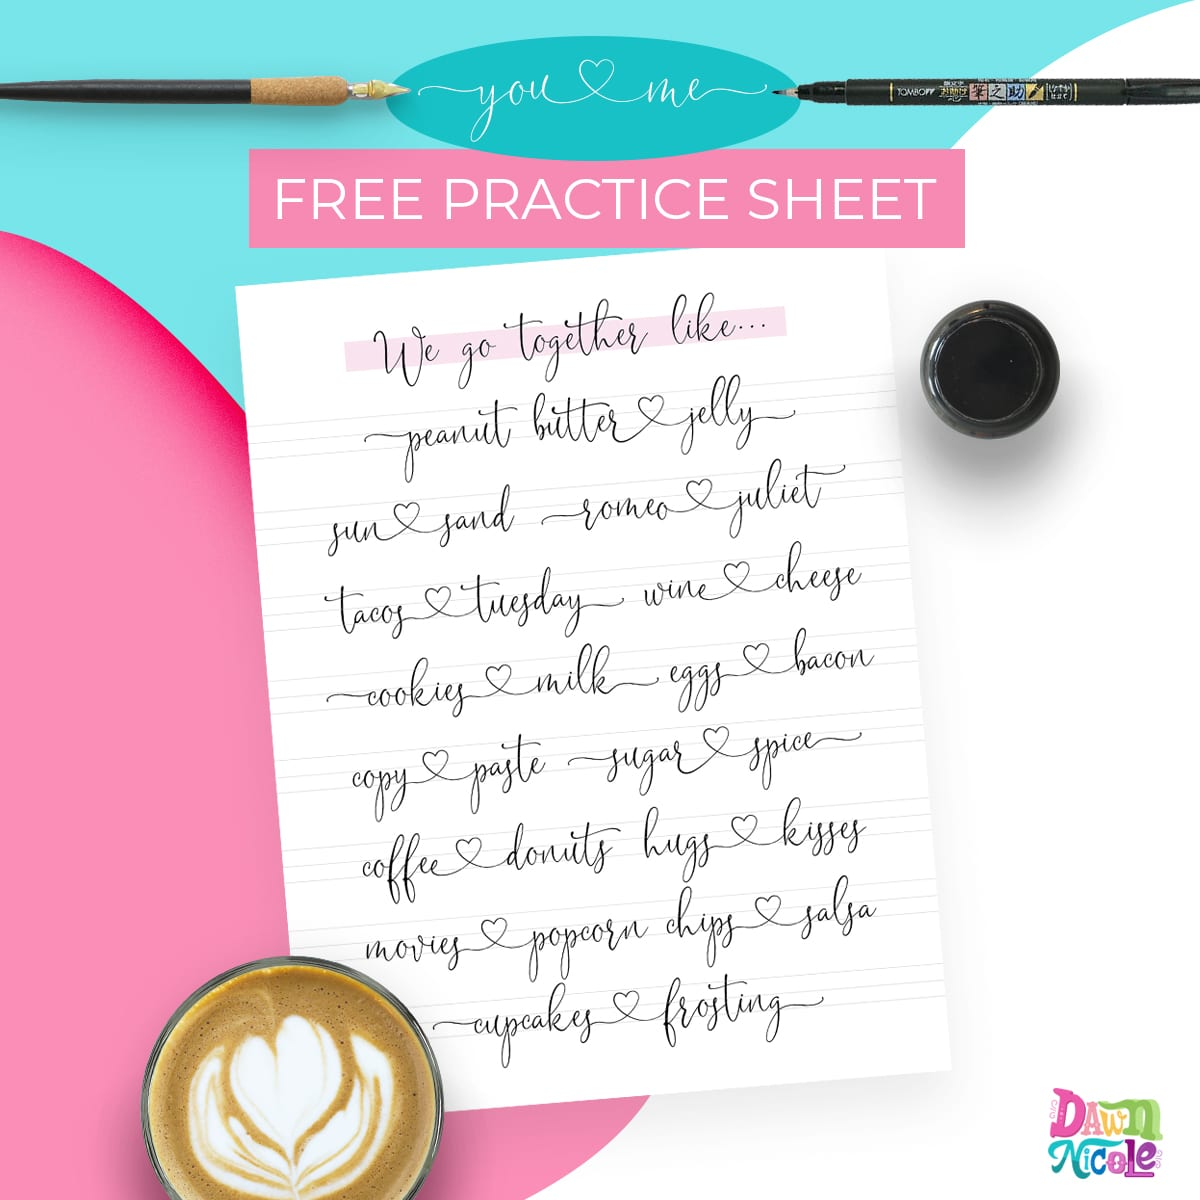 Comfy You Me Calligraphy Practice Sheet Dawn Nicole Faux Calligraphy Practice Sheets Free Calligraphy Practice Sheets Free inspiration Modern Calligraphy Practice Sheets